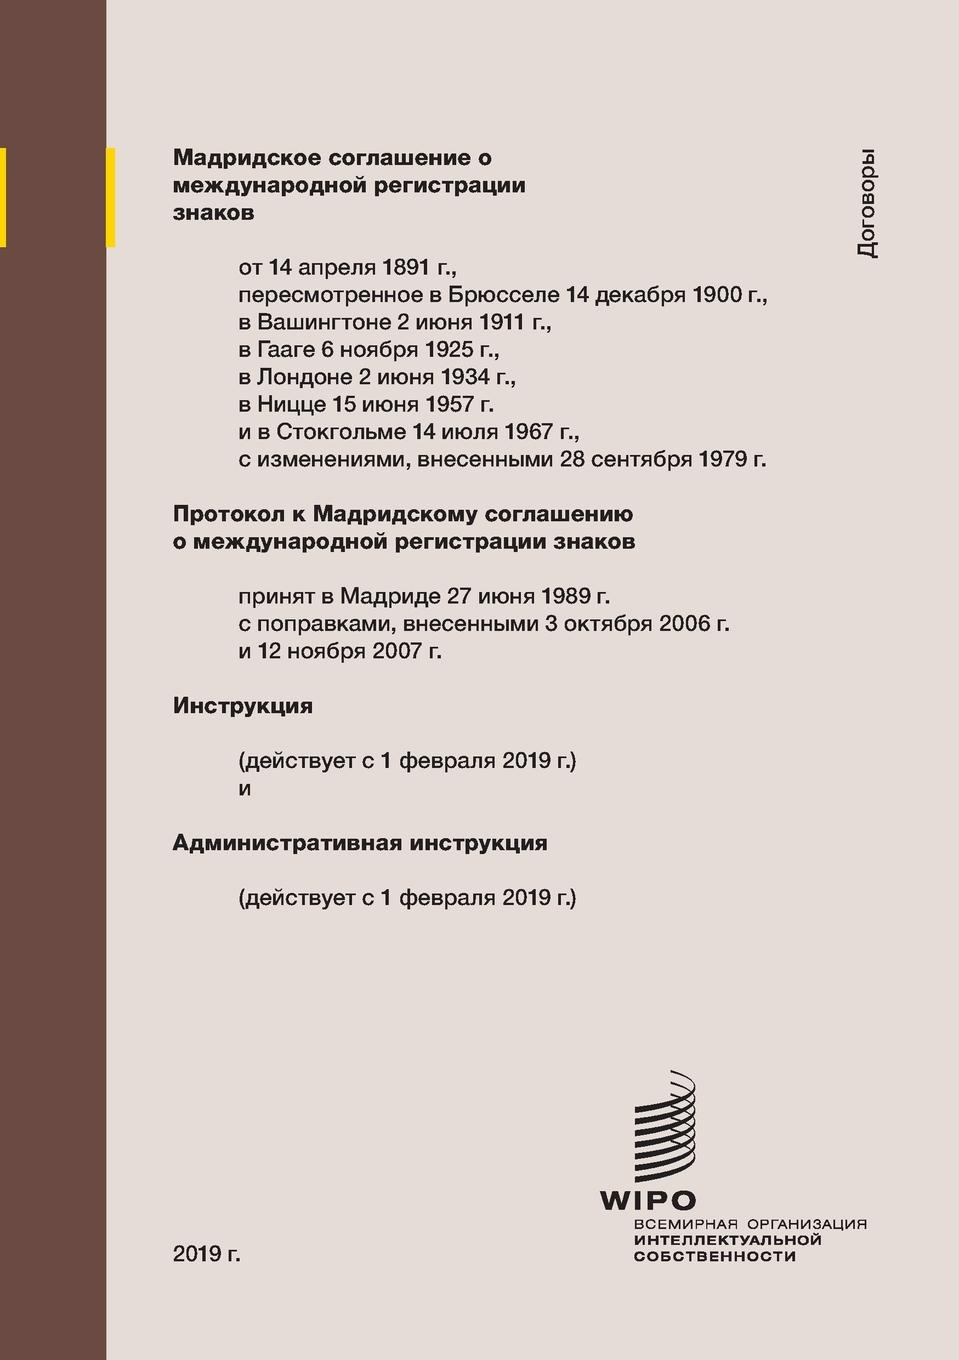 Madrid Agreement Concerning the International Registration of Marks. Regulations as in force on February 1, 2019 (Russian Edition) registration